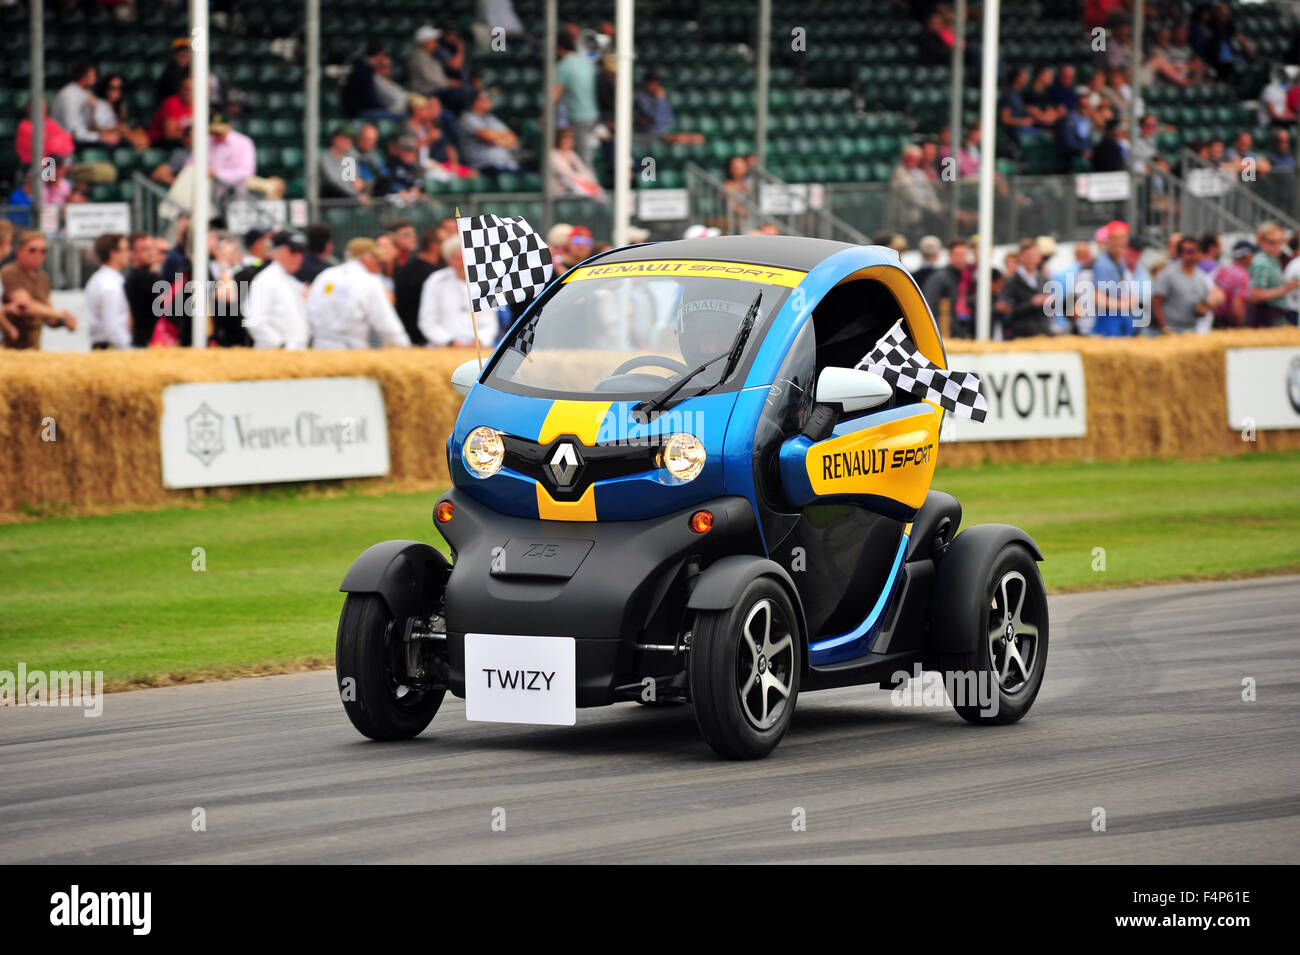 A Renault Twizy Sport at the Goodwood Festival of Speed in the UK. Stock Photo